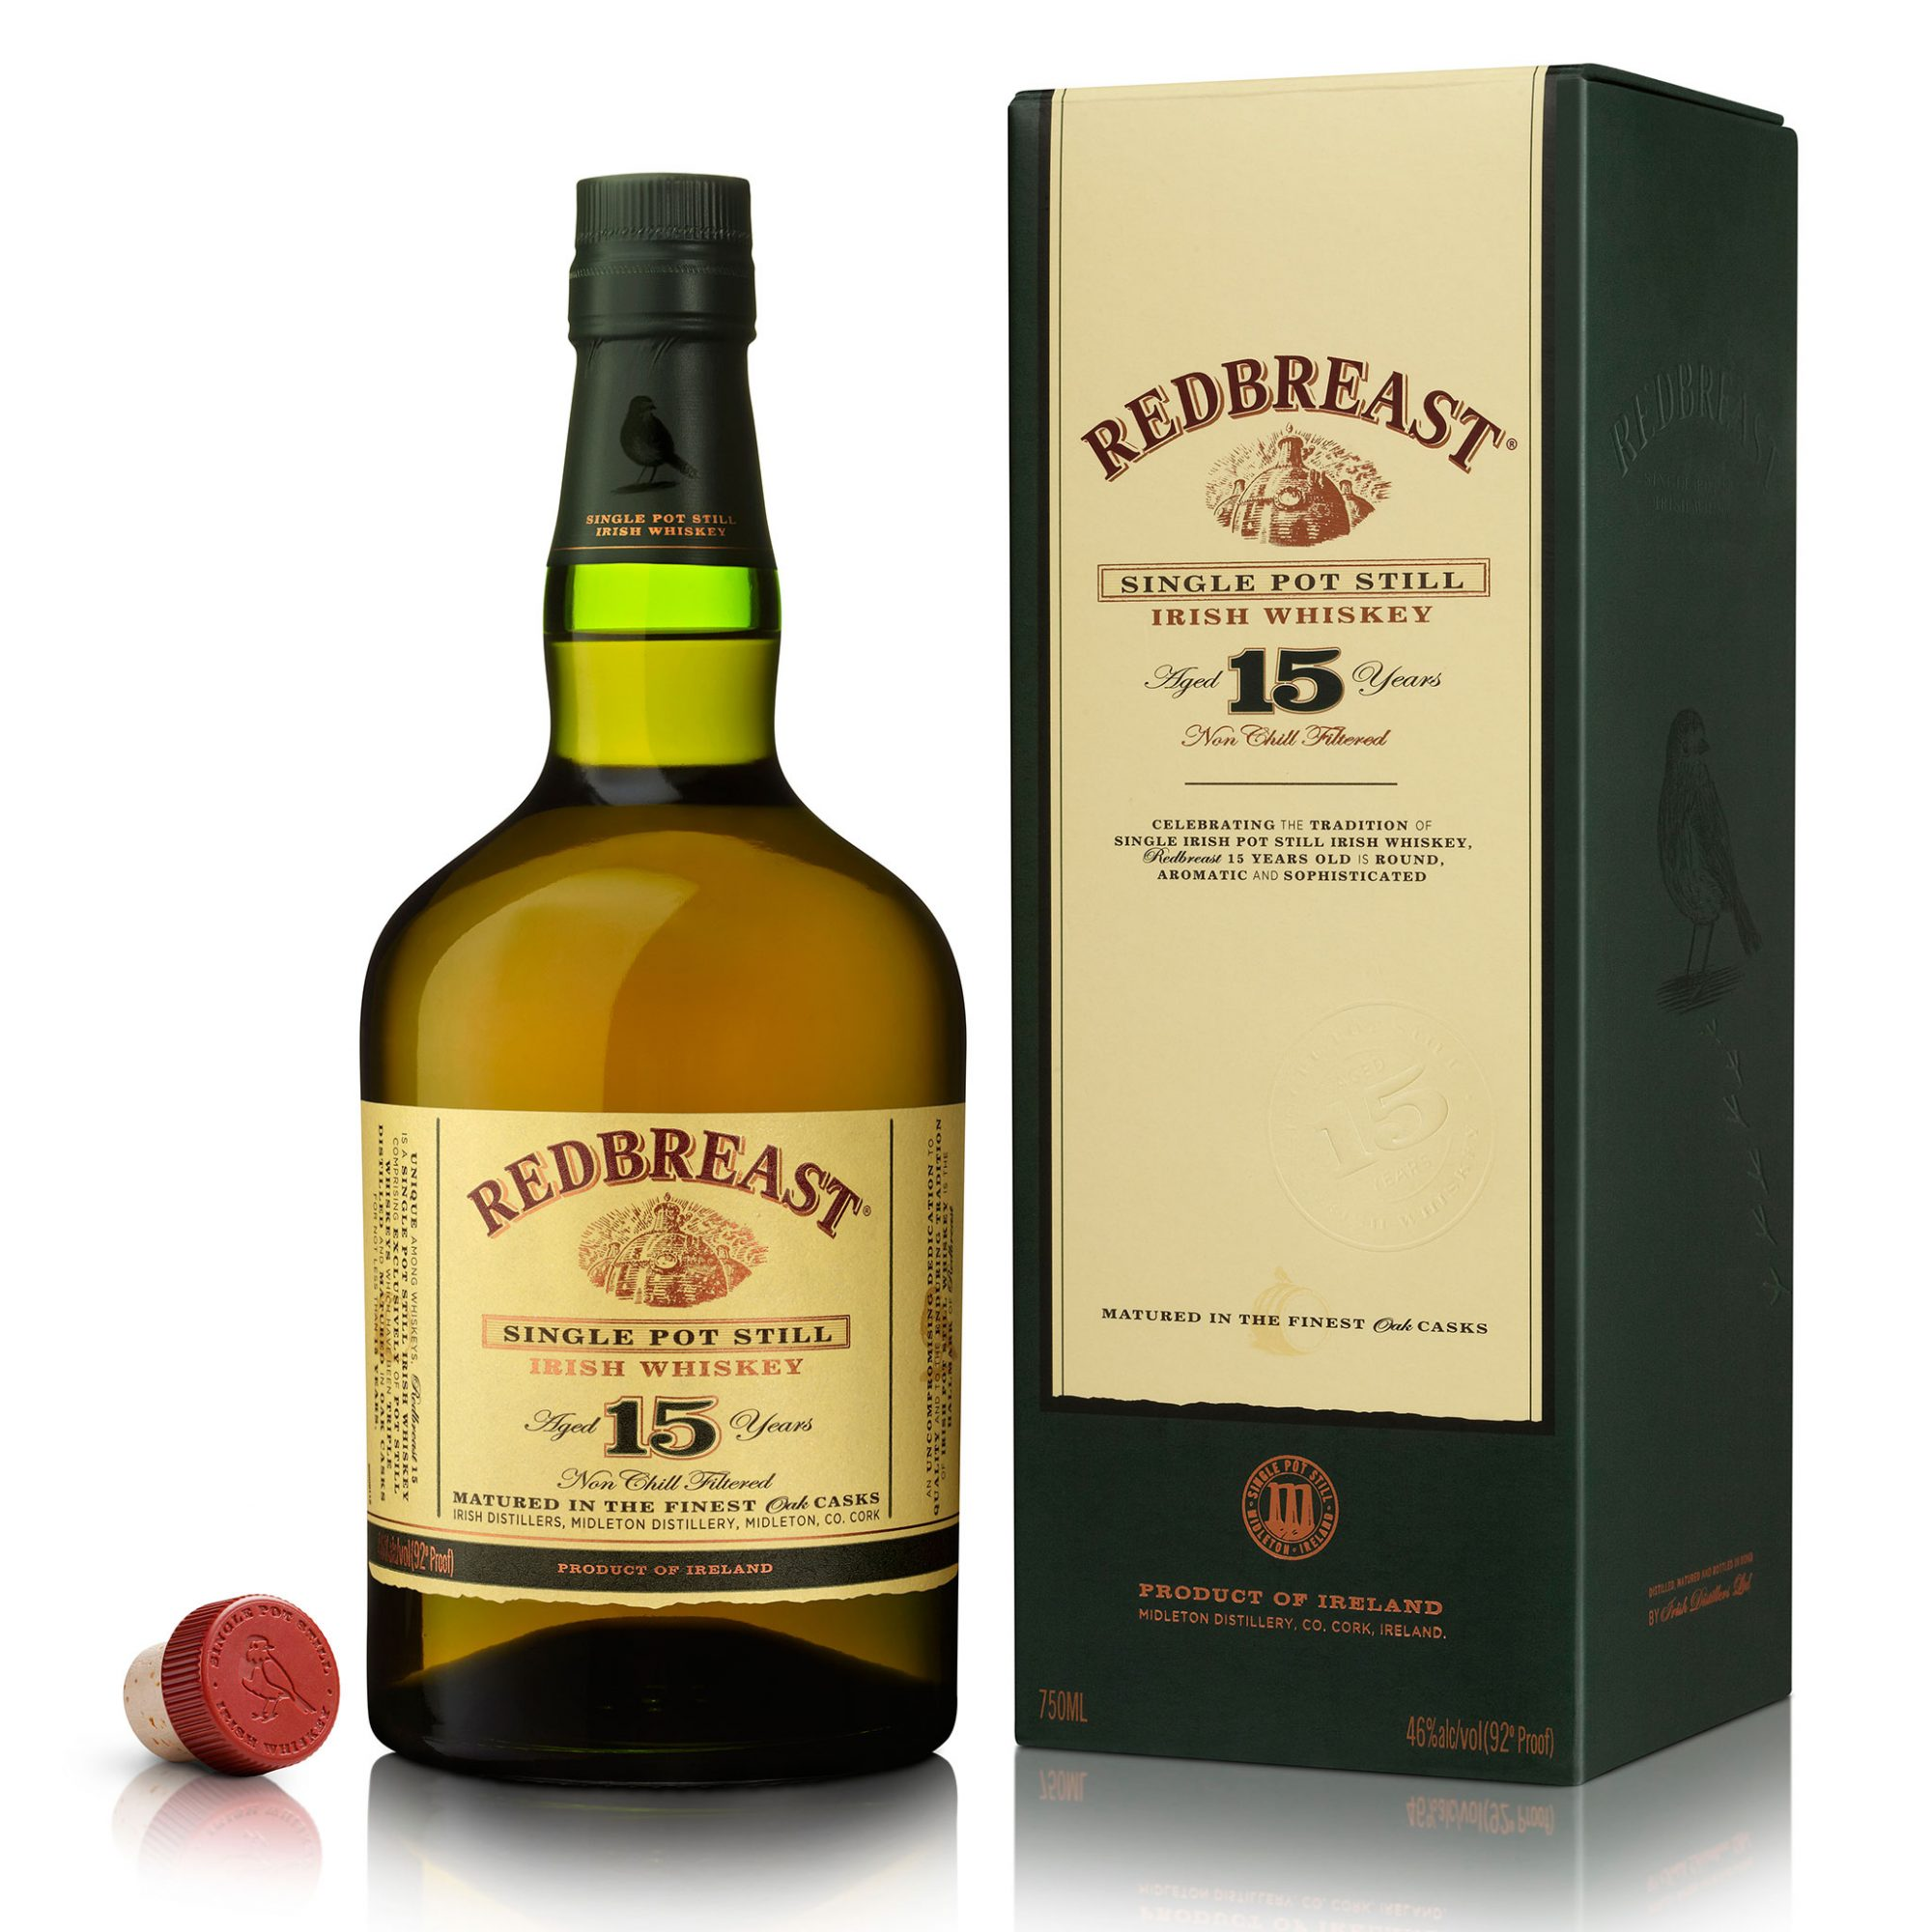 REDBREAST WHISKEY